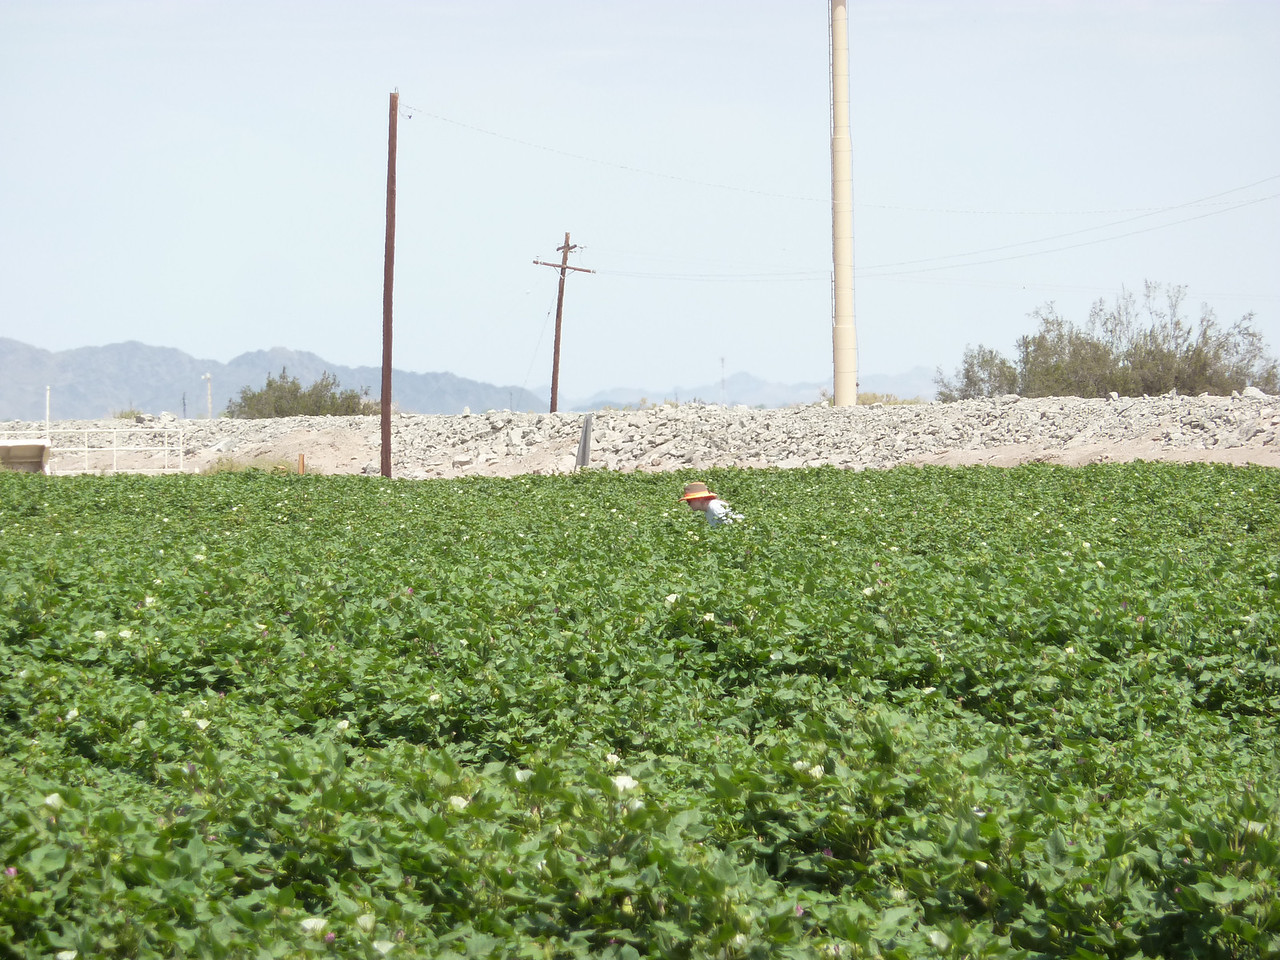 Abby searching for a downed bird amonst the high cotton.